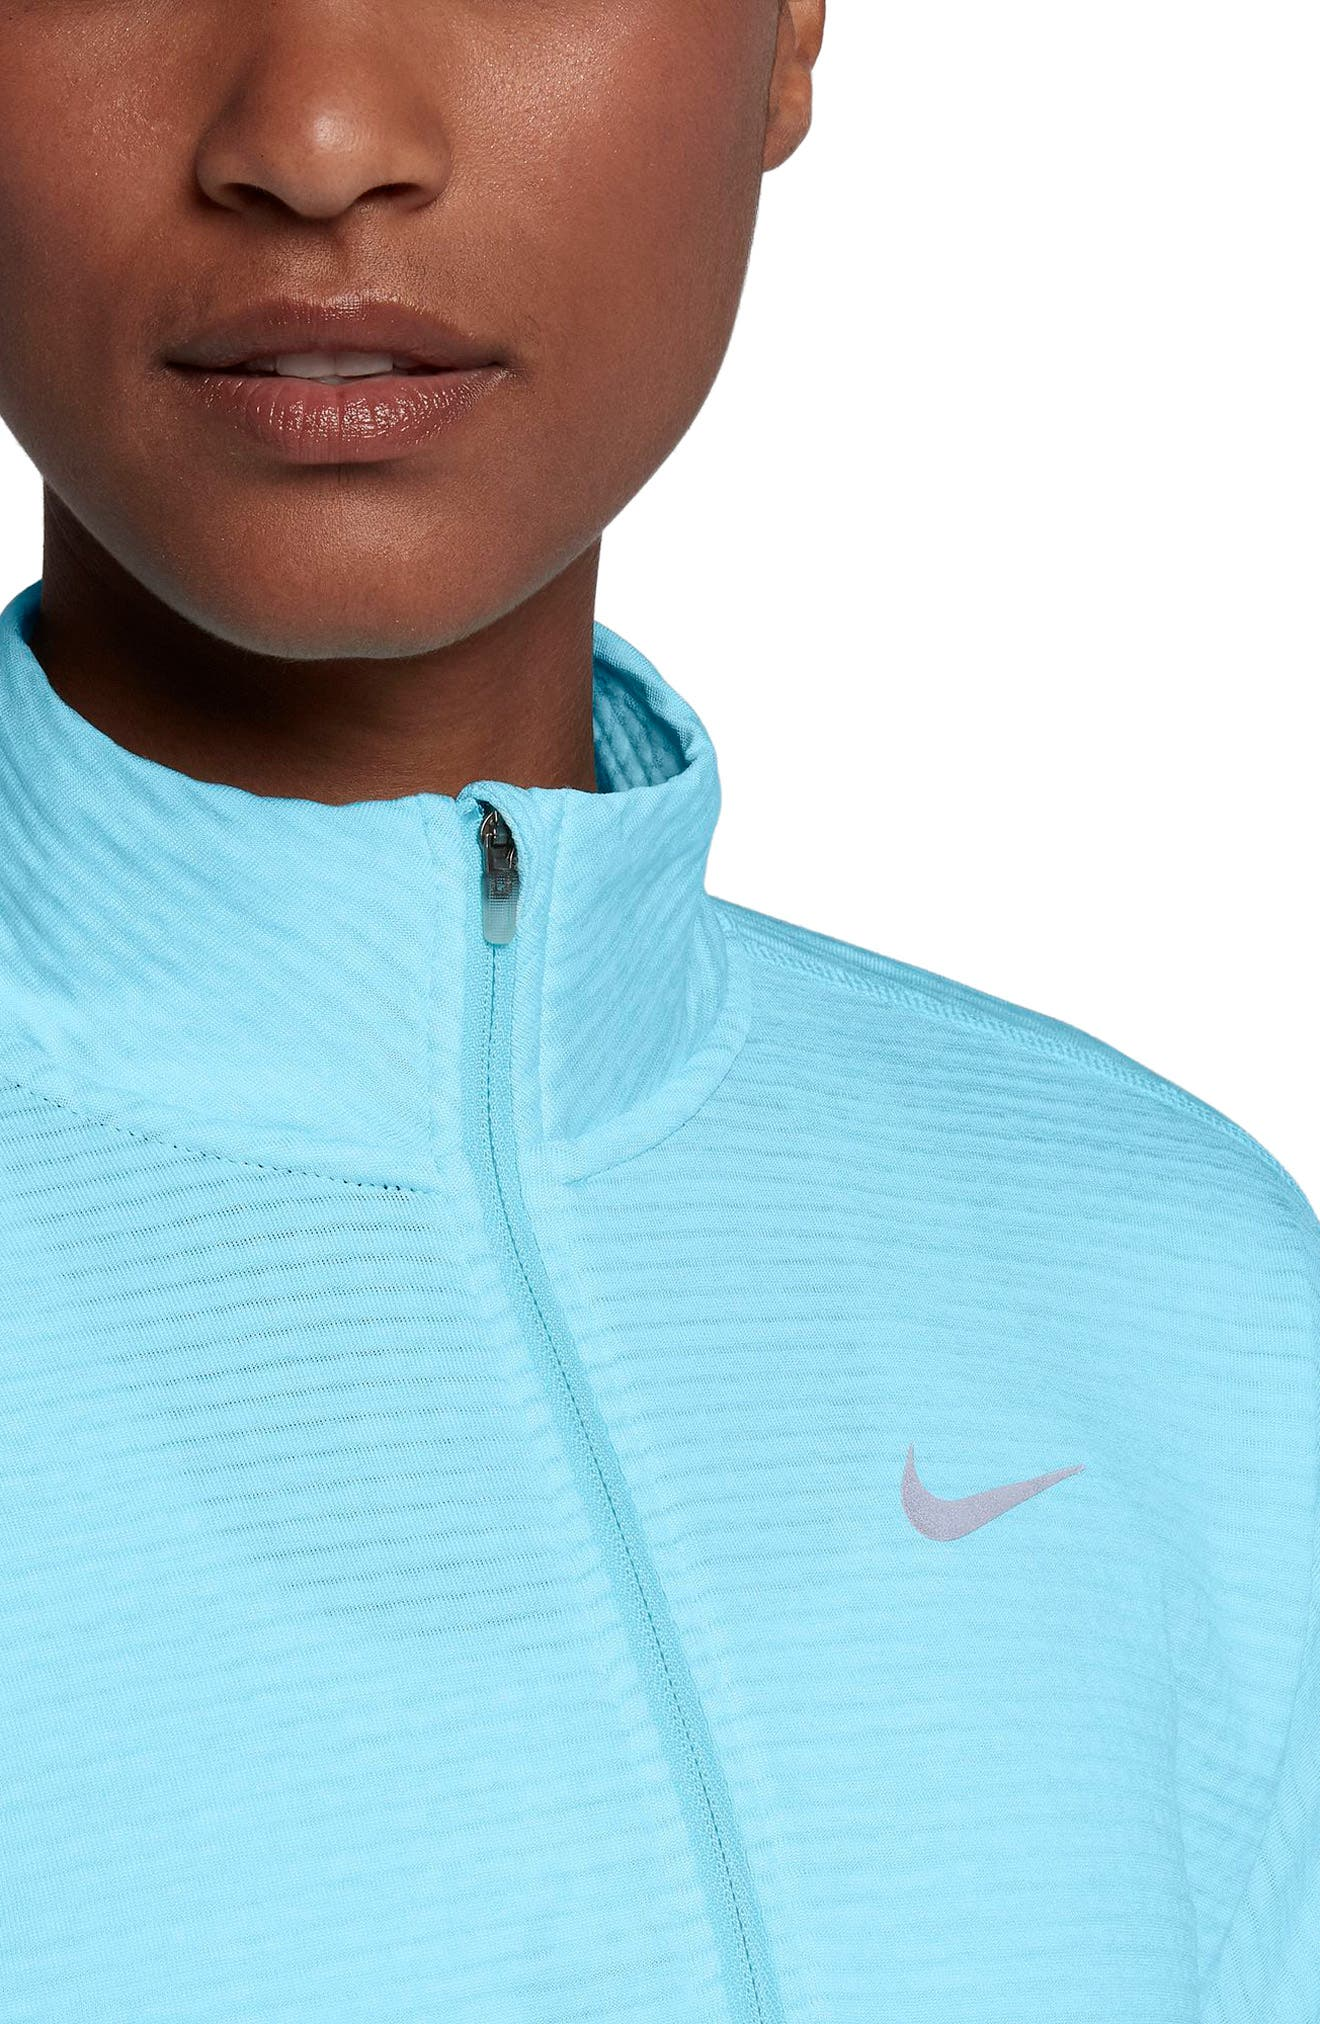 Therma Sphere Element Running Pullover Top,                             Alternate thumbnail 4, color,                             Polarized Blue/ Htr